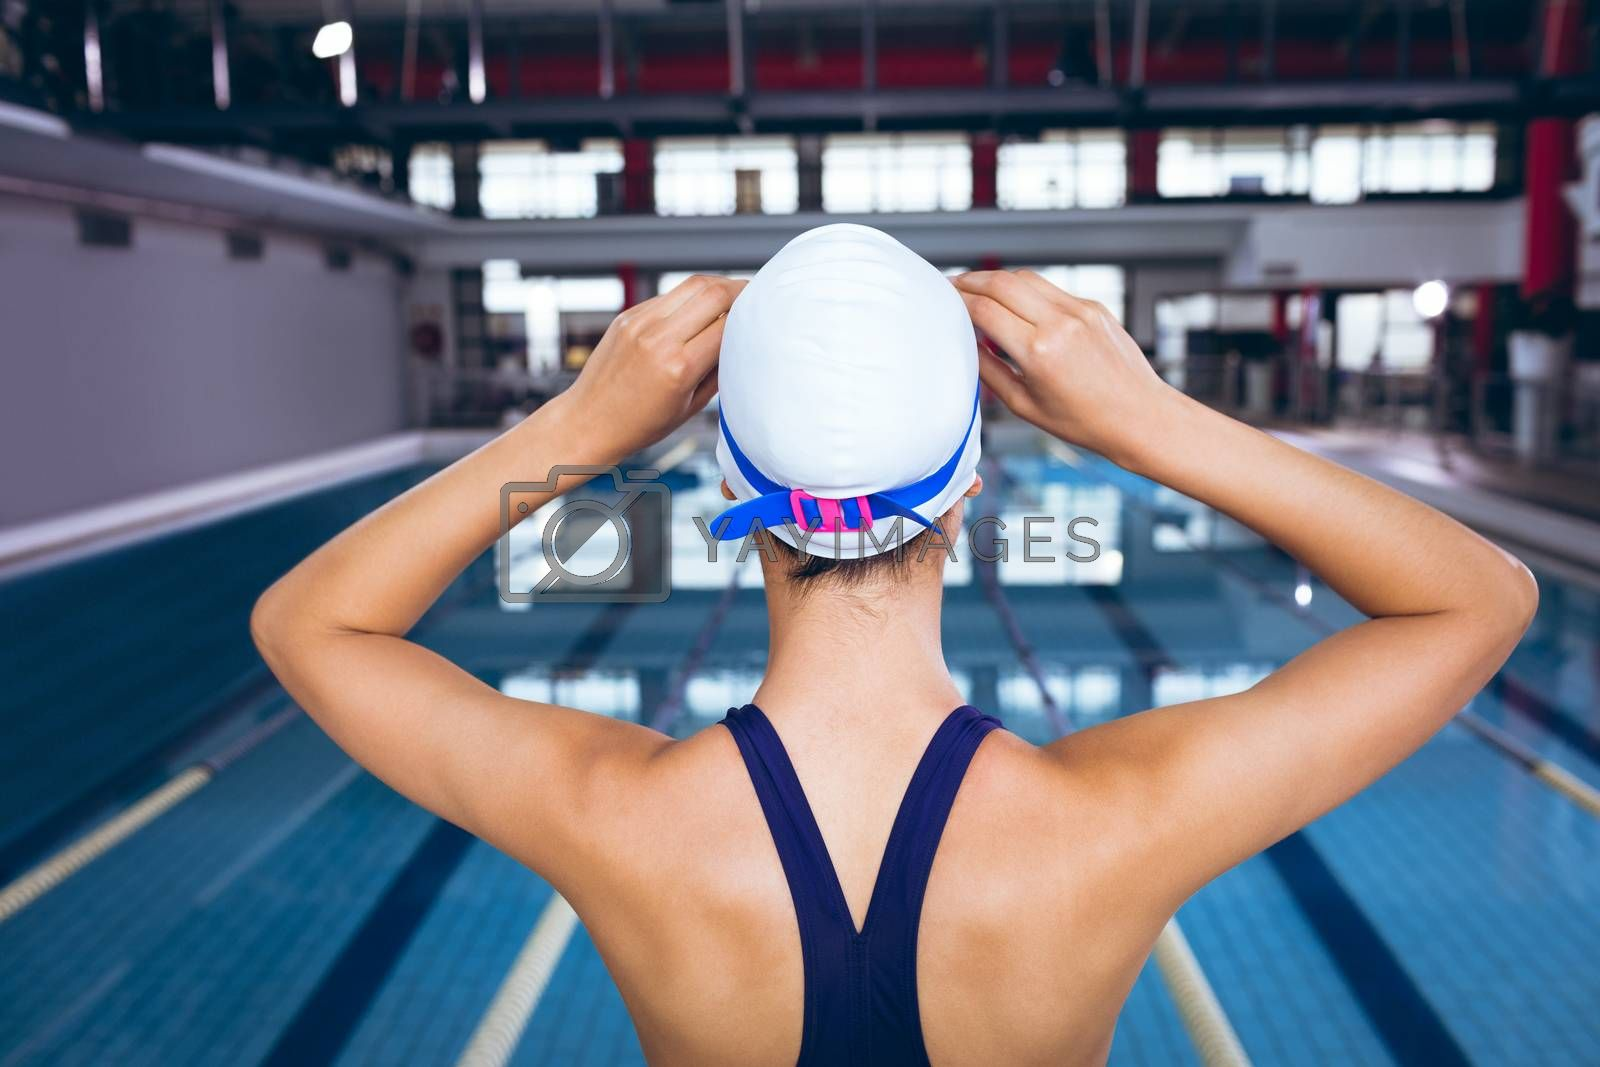 Rear view of a young African-American woman wearing a swimsuit and swimming cap with goggles while standing by an olympic sized pool inside a stadium. Bright modern gym with fit healthy people working out and training